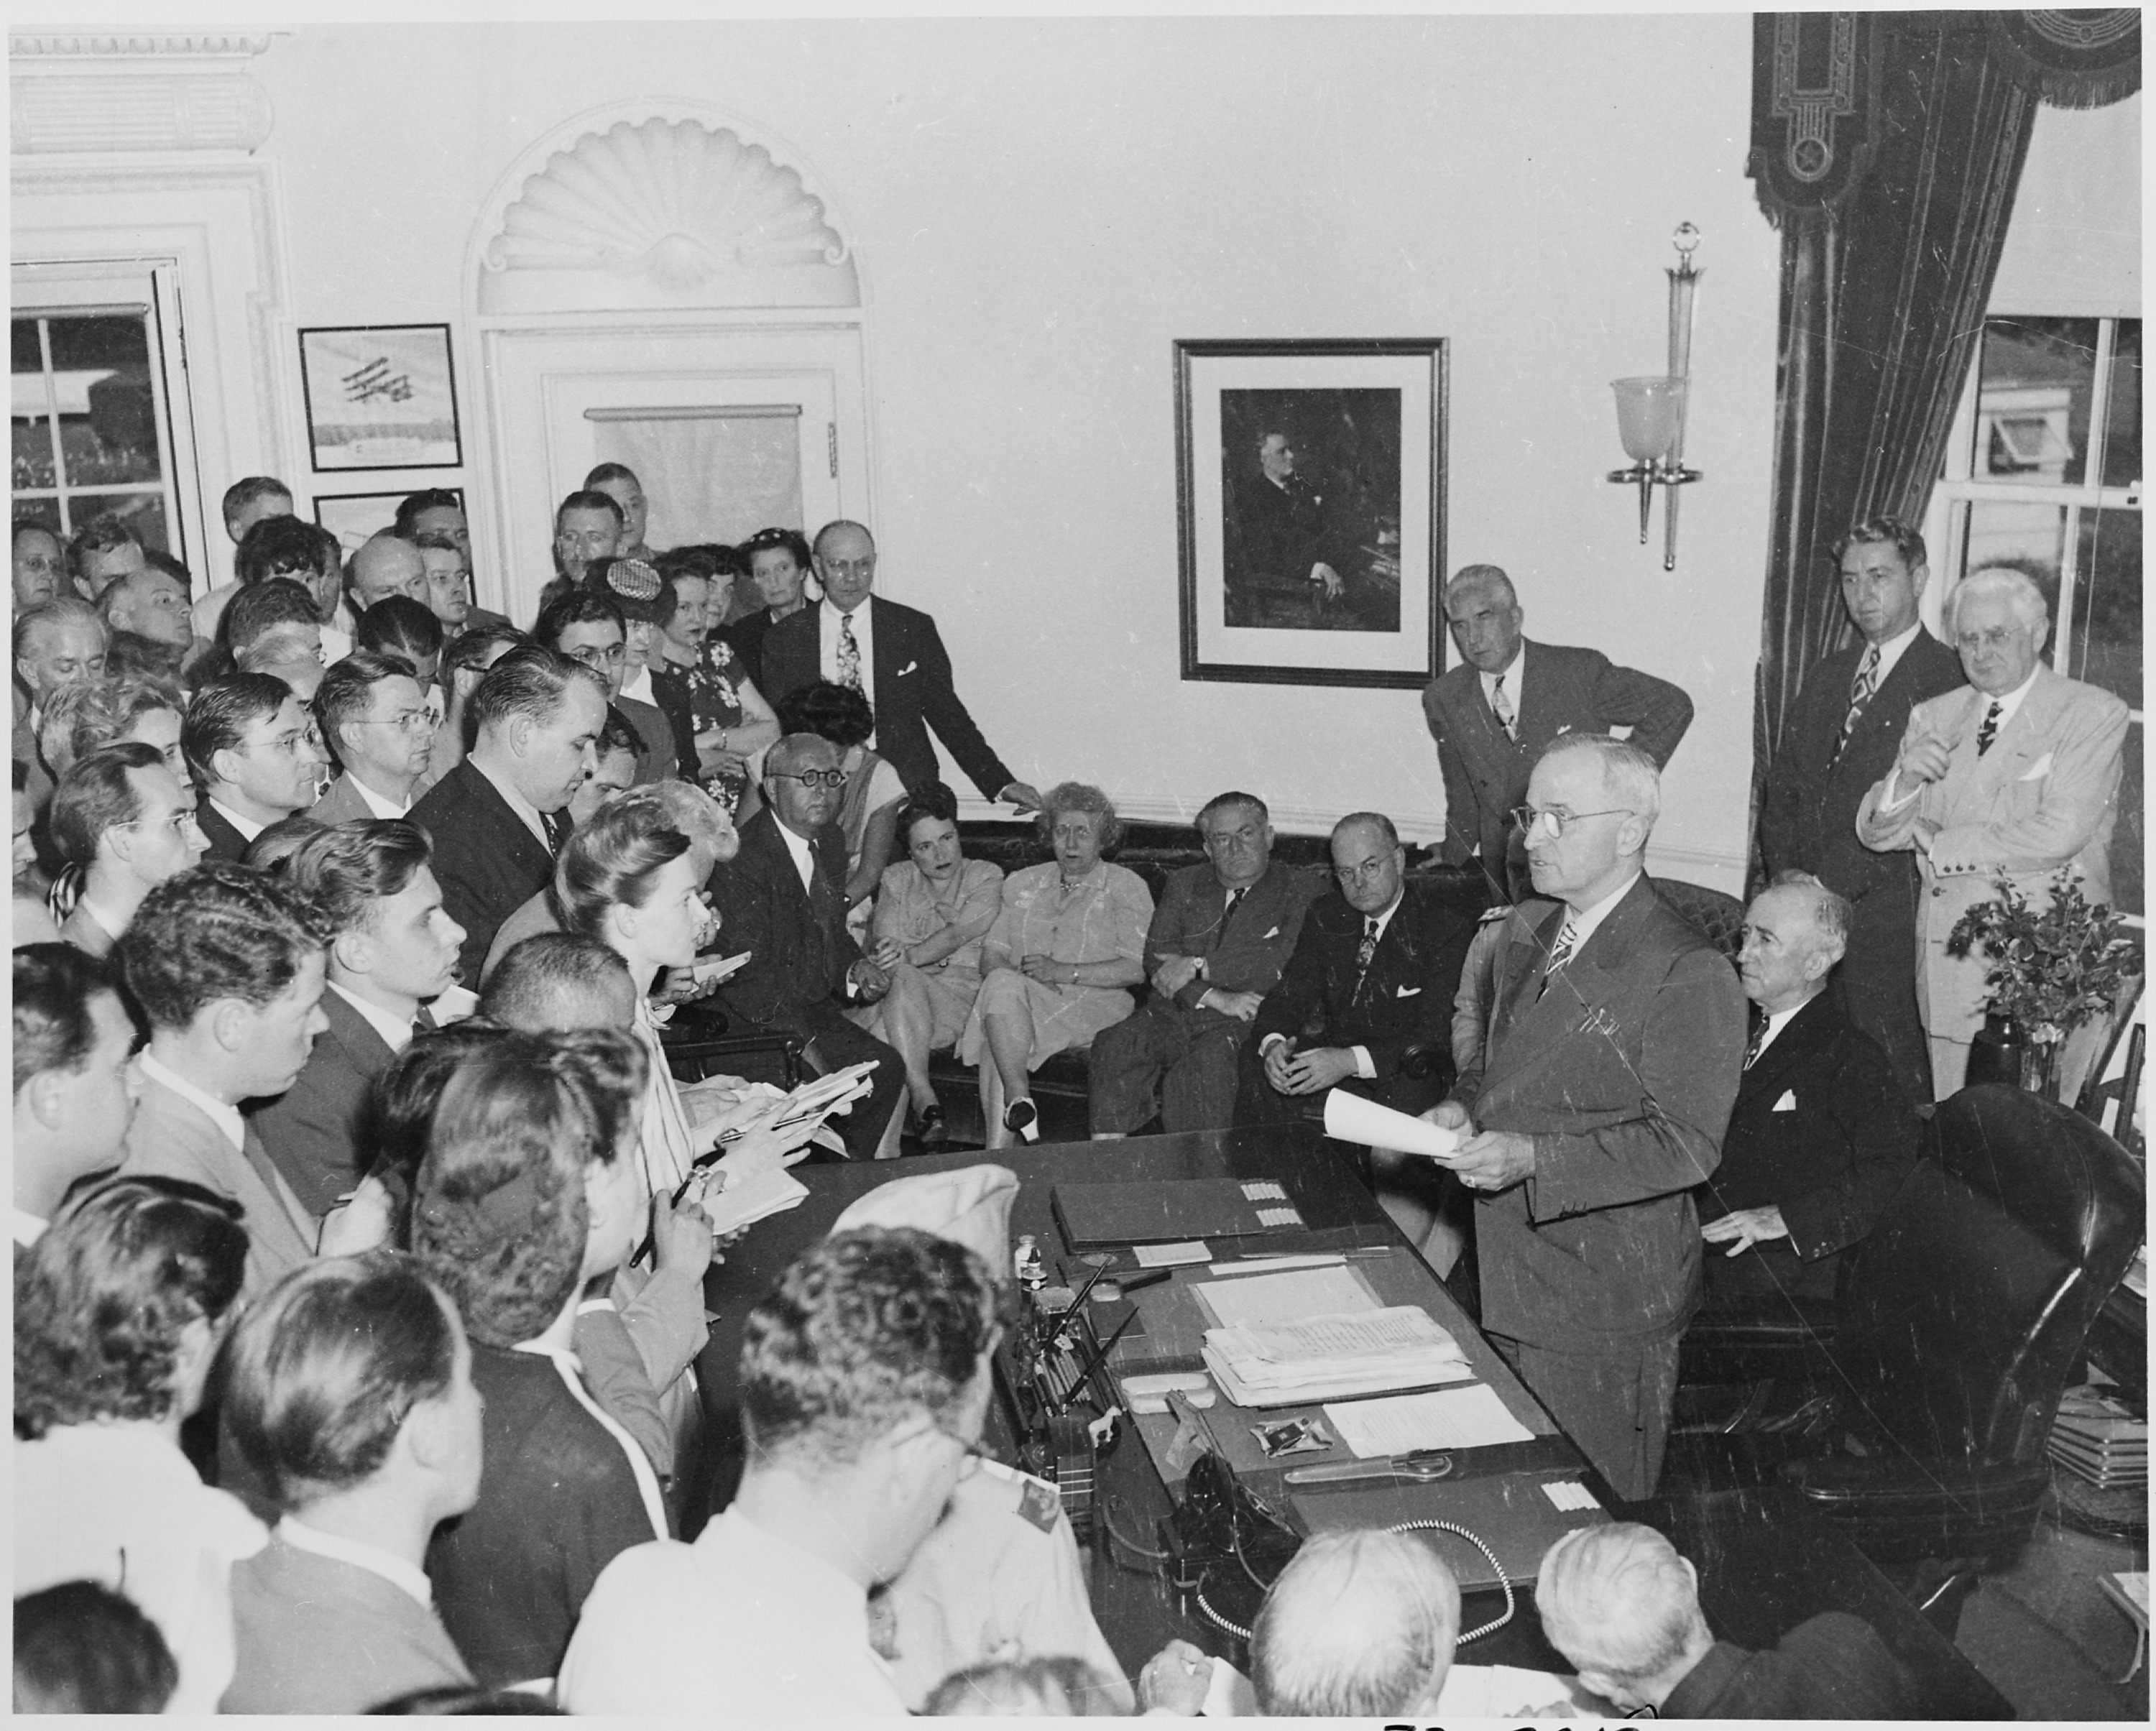 President Harry S. Truman in the Oval Office, reading the announcement of Japan's surrender to assembled reporters and officials on August 14. 1945. Photo from the National Archives and Records Administration. Office of Presidential Libraries. Harry S. Truman Library. (04/01/1985 - ), cataloged under the National Archives Identifier (NAID) 199171.